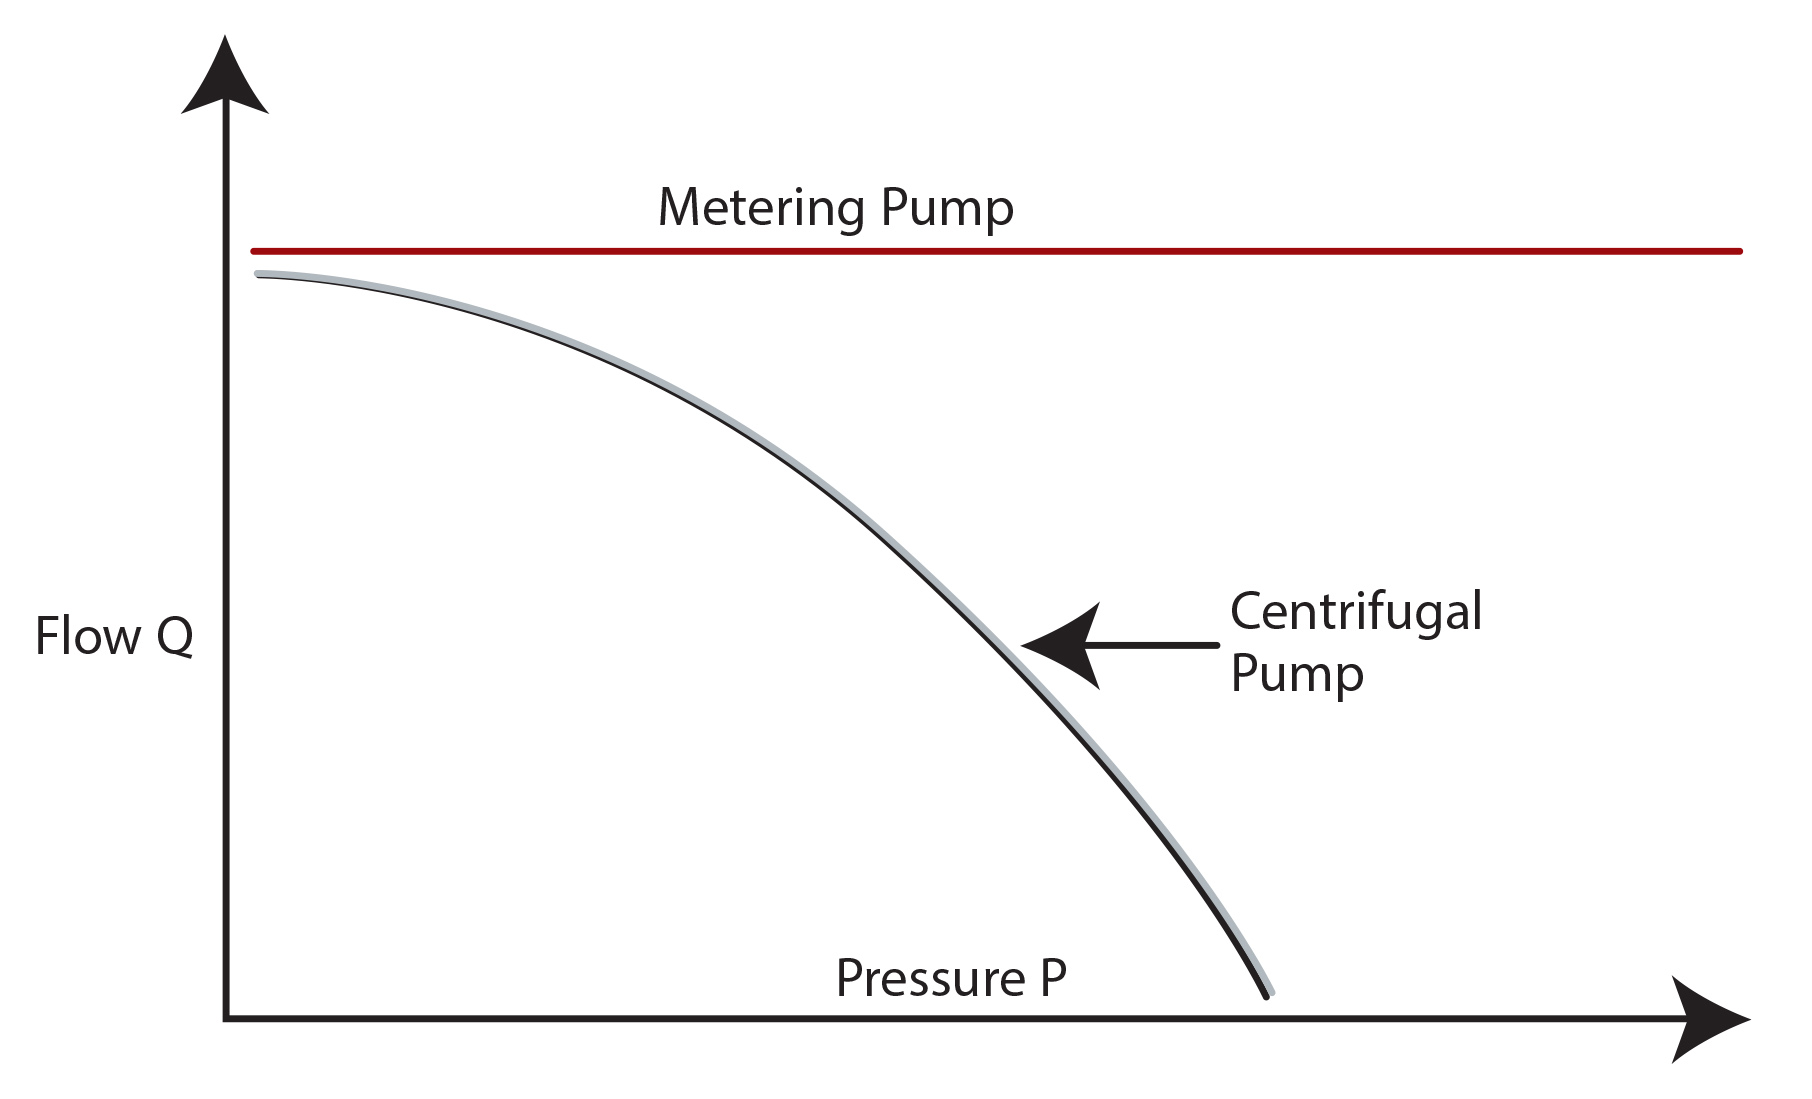 Metering pump flow rates are not greatly affected by changes in discharge pressure